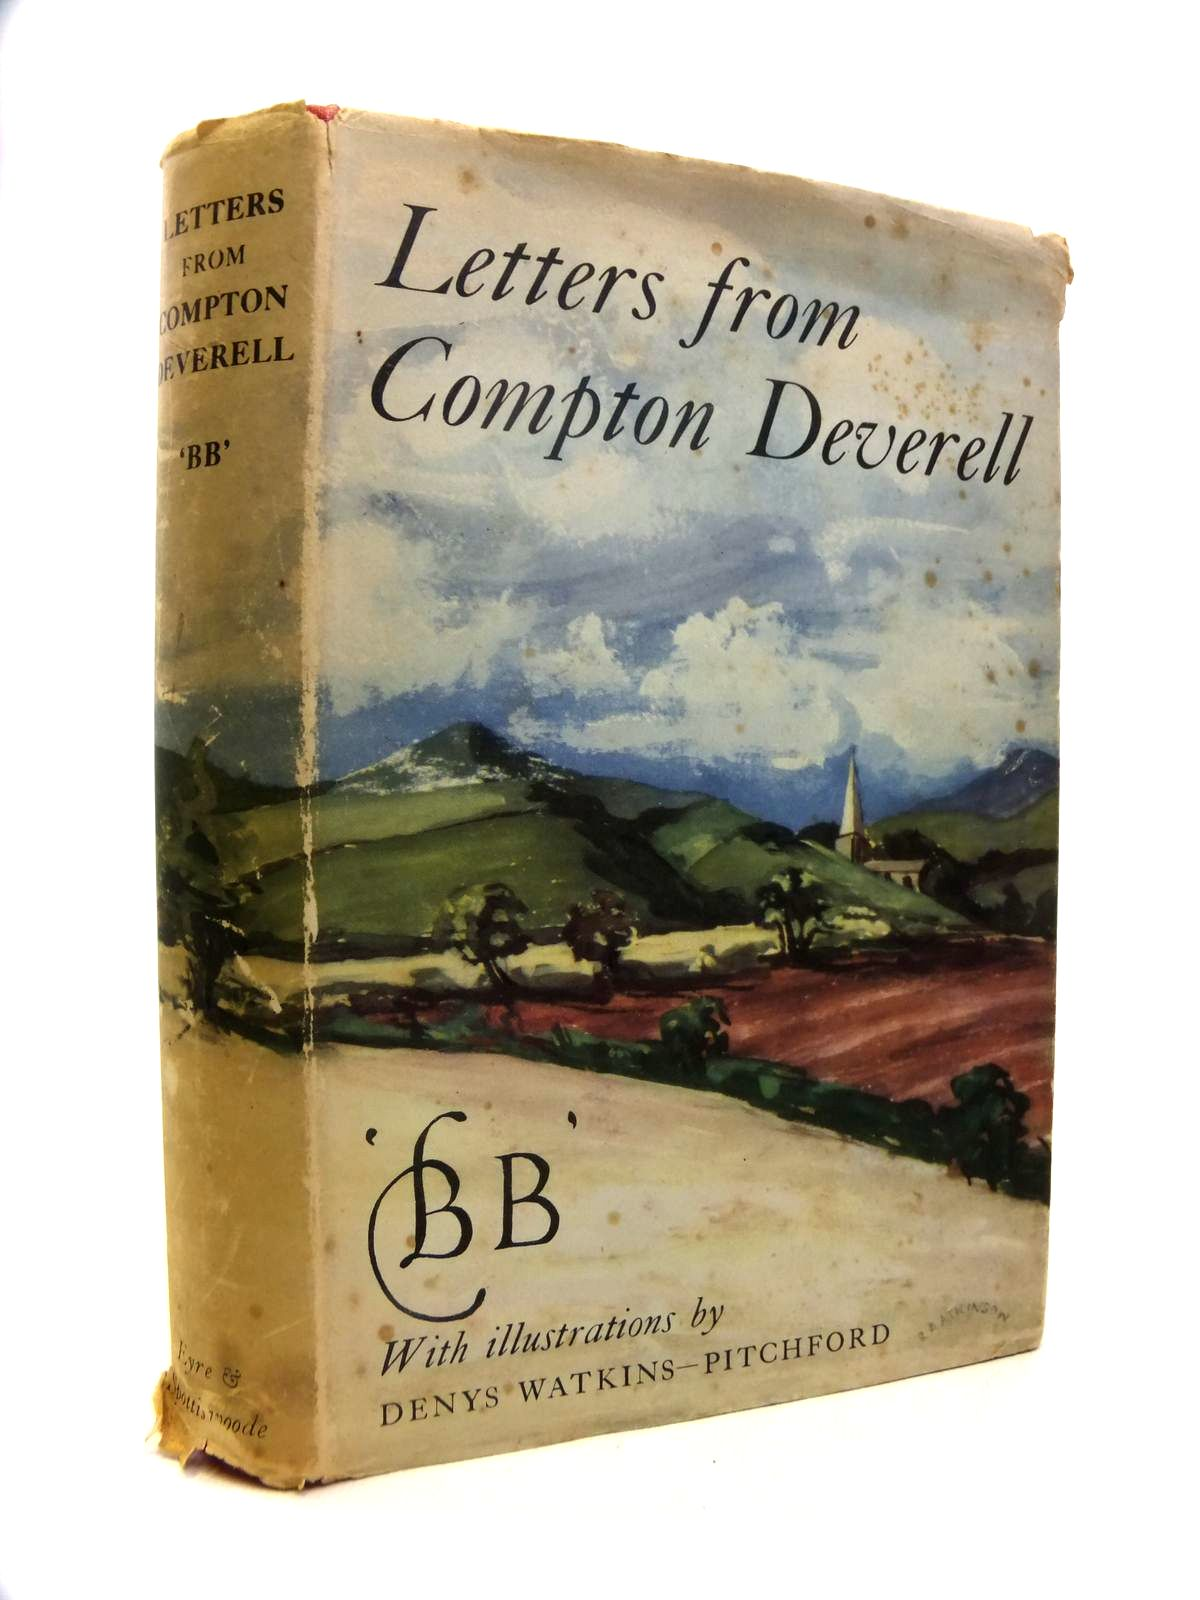 Cover of LETTERS FROM COMPTON DEVERELL by  BB